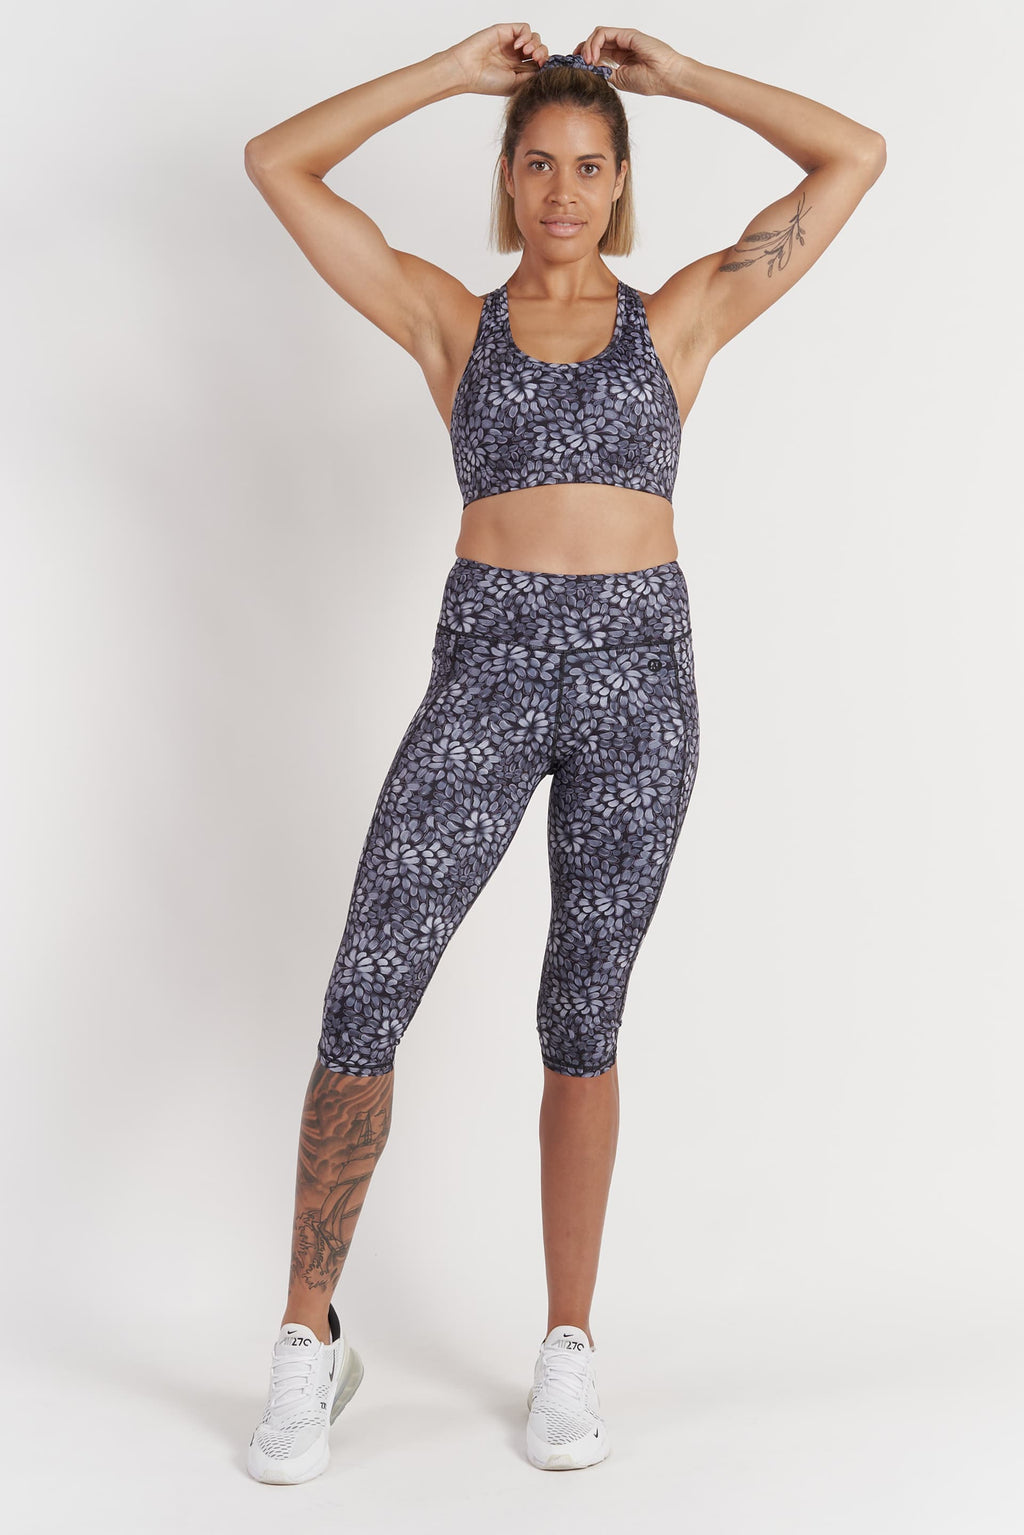 croppedlength-gym-tights-brolga-small-front